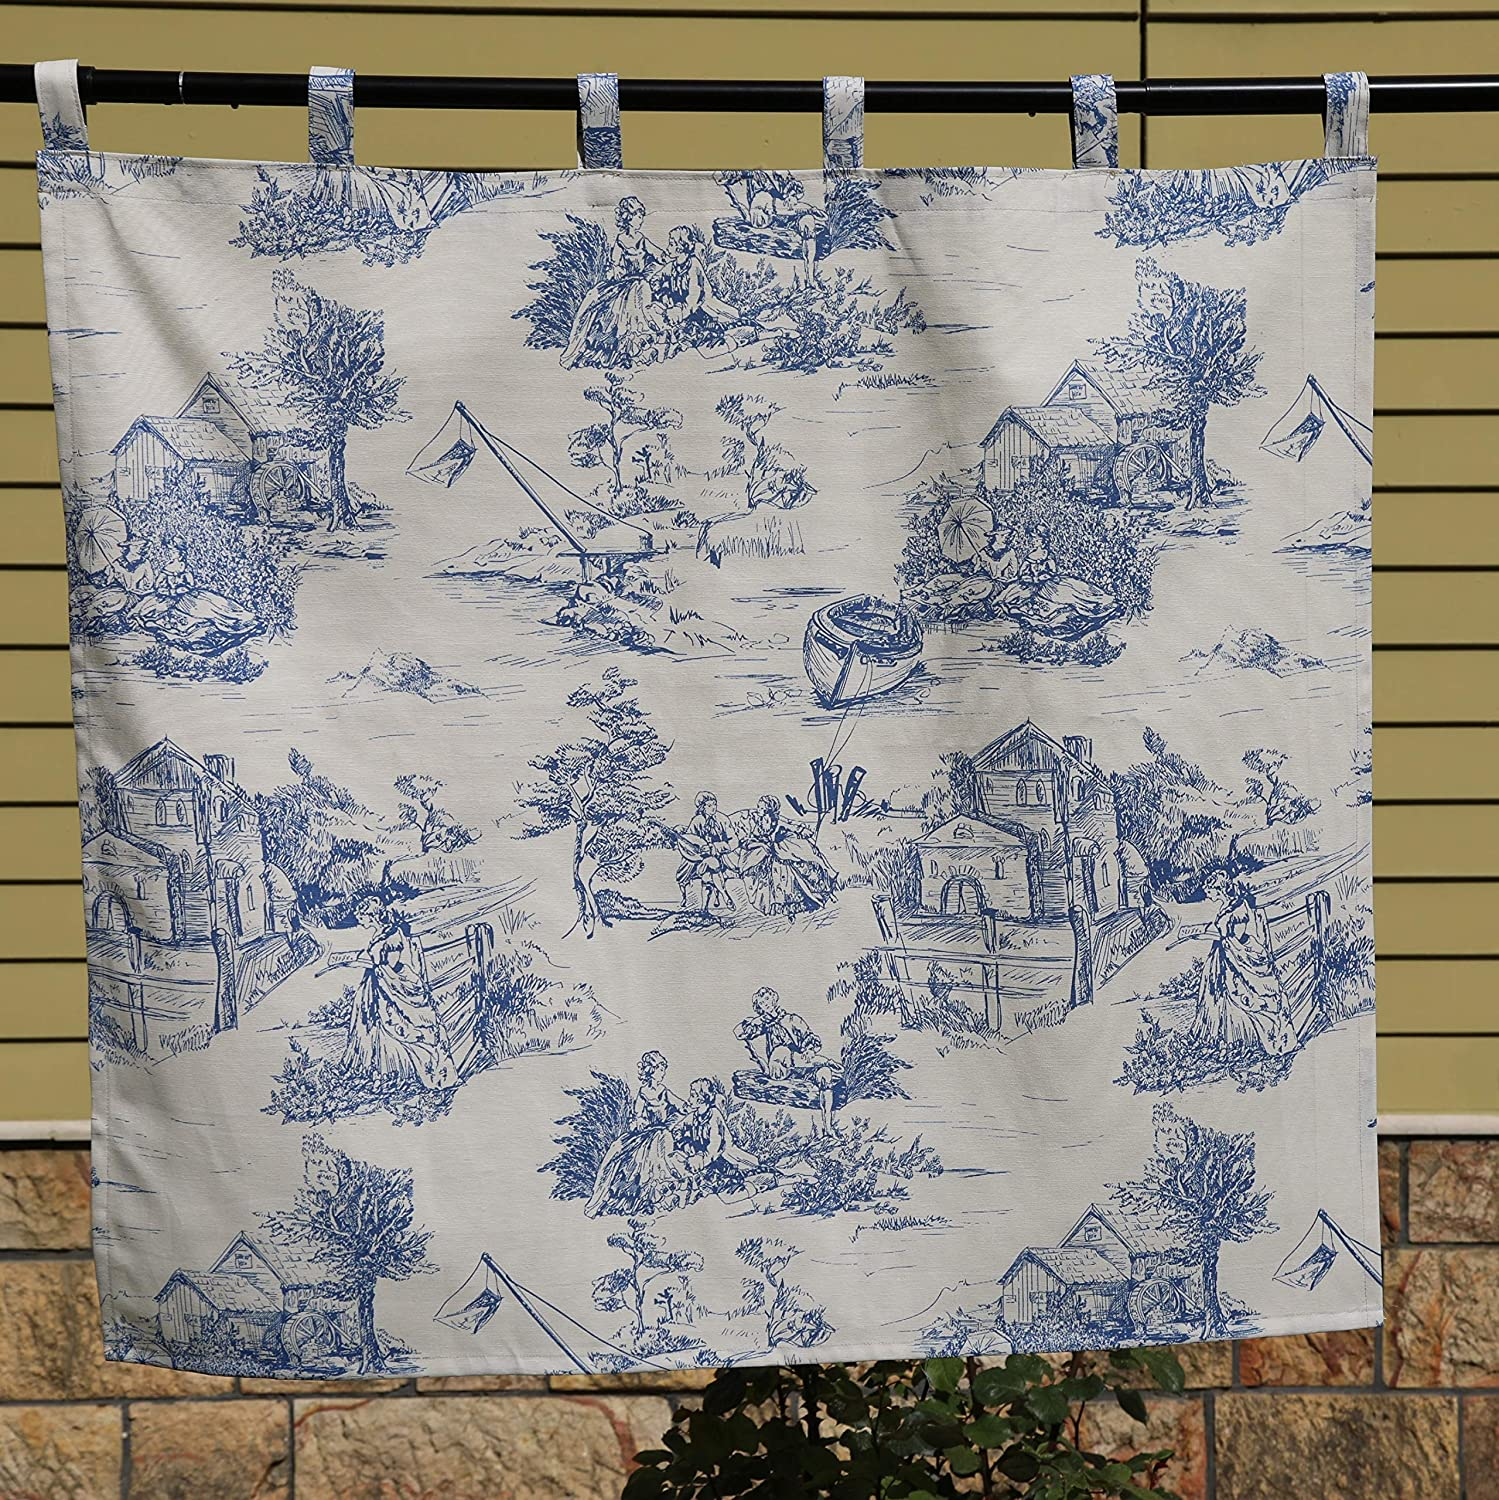 Toile de Jouy Valance Waverly Blue White Cotton Lined Rod Pocket Scalloped French Country Chic Extra Long 200 x 17 Custom Made Vintage